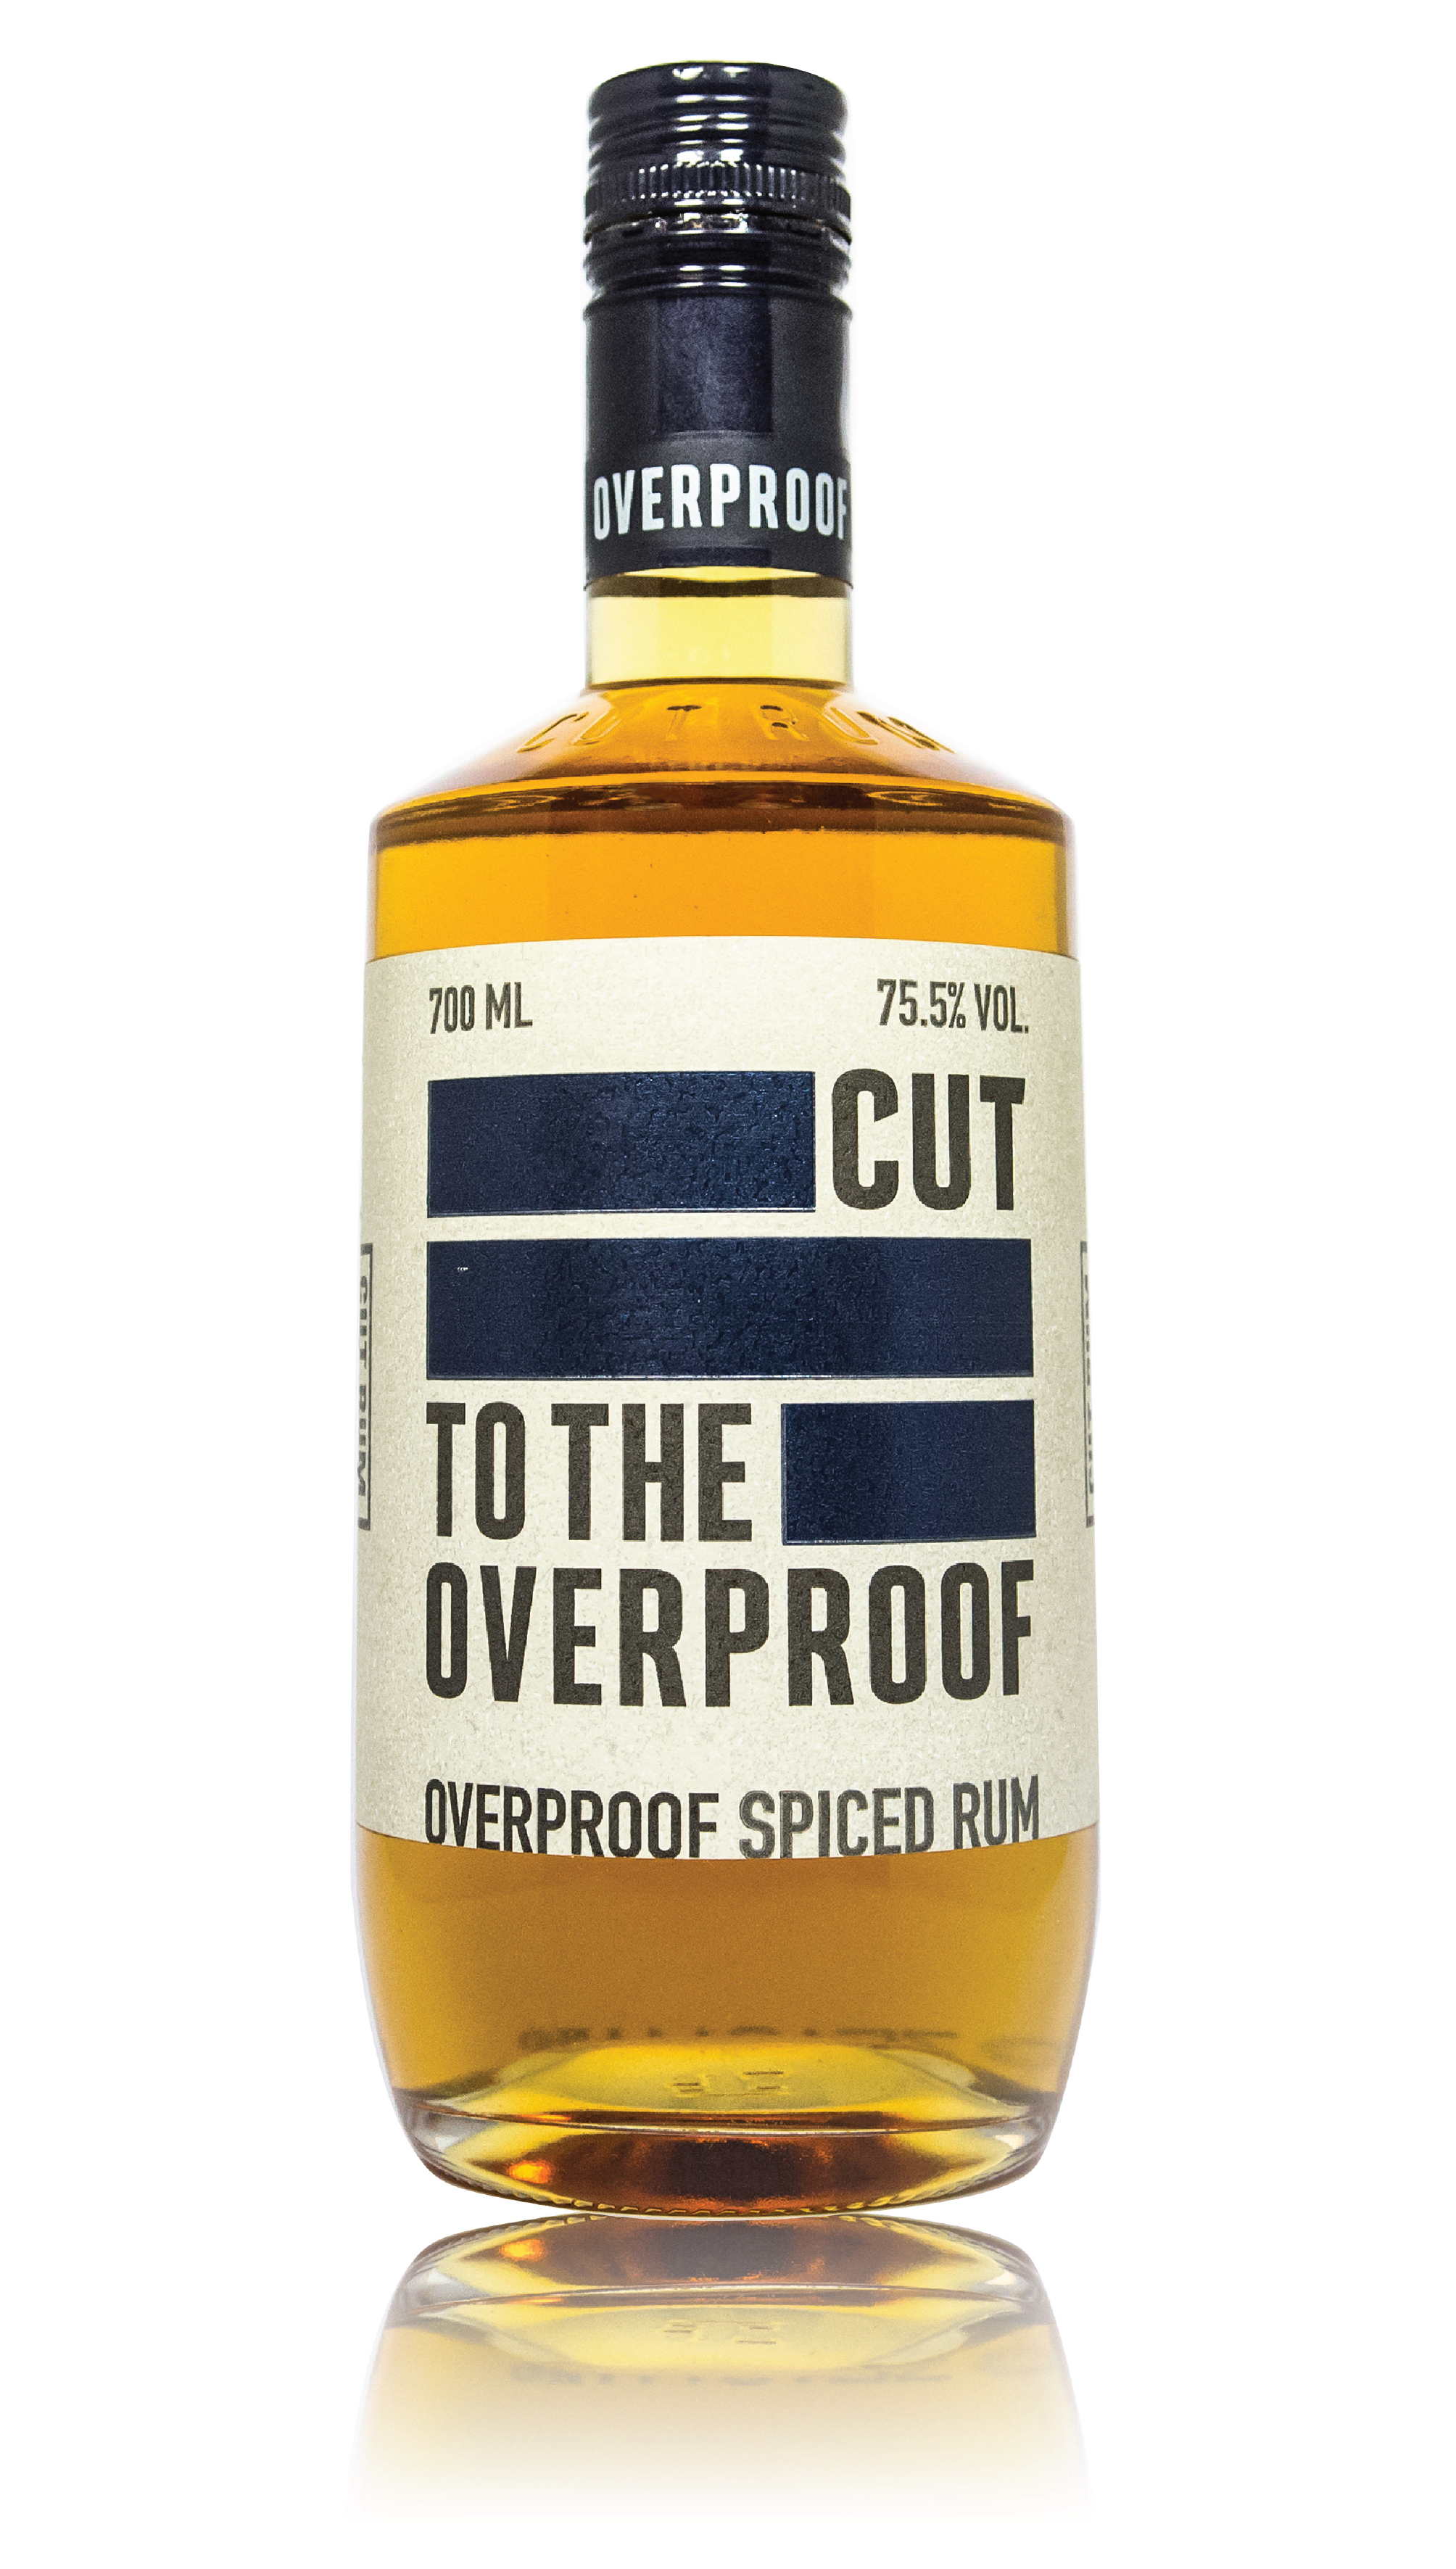 CUT OVERPROOF RUM - 151 PROOF 75.5% ABVOUR AMAZINGLY SMOOTH OVERPROOF SPICED RUM. INFUSED WITH ALL THE SAME GREAT SPICES BUT AT OVER 70% IT TAKES ON SO MANY NEW CHARACTERISTICS AND HAS A DEPTH OF FLAVOUR THAT WILL STAND UP TO ANY INGREDIENTON THE NOSE████WAFFLES ██████████ PANCAKES ██████████MOTOR OILON THE TASTEVANILLA ██████ ██████BUTTERSCOTCH ███████COCONUT OIL ███████ CINNAMON